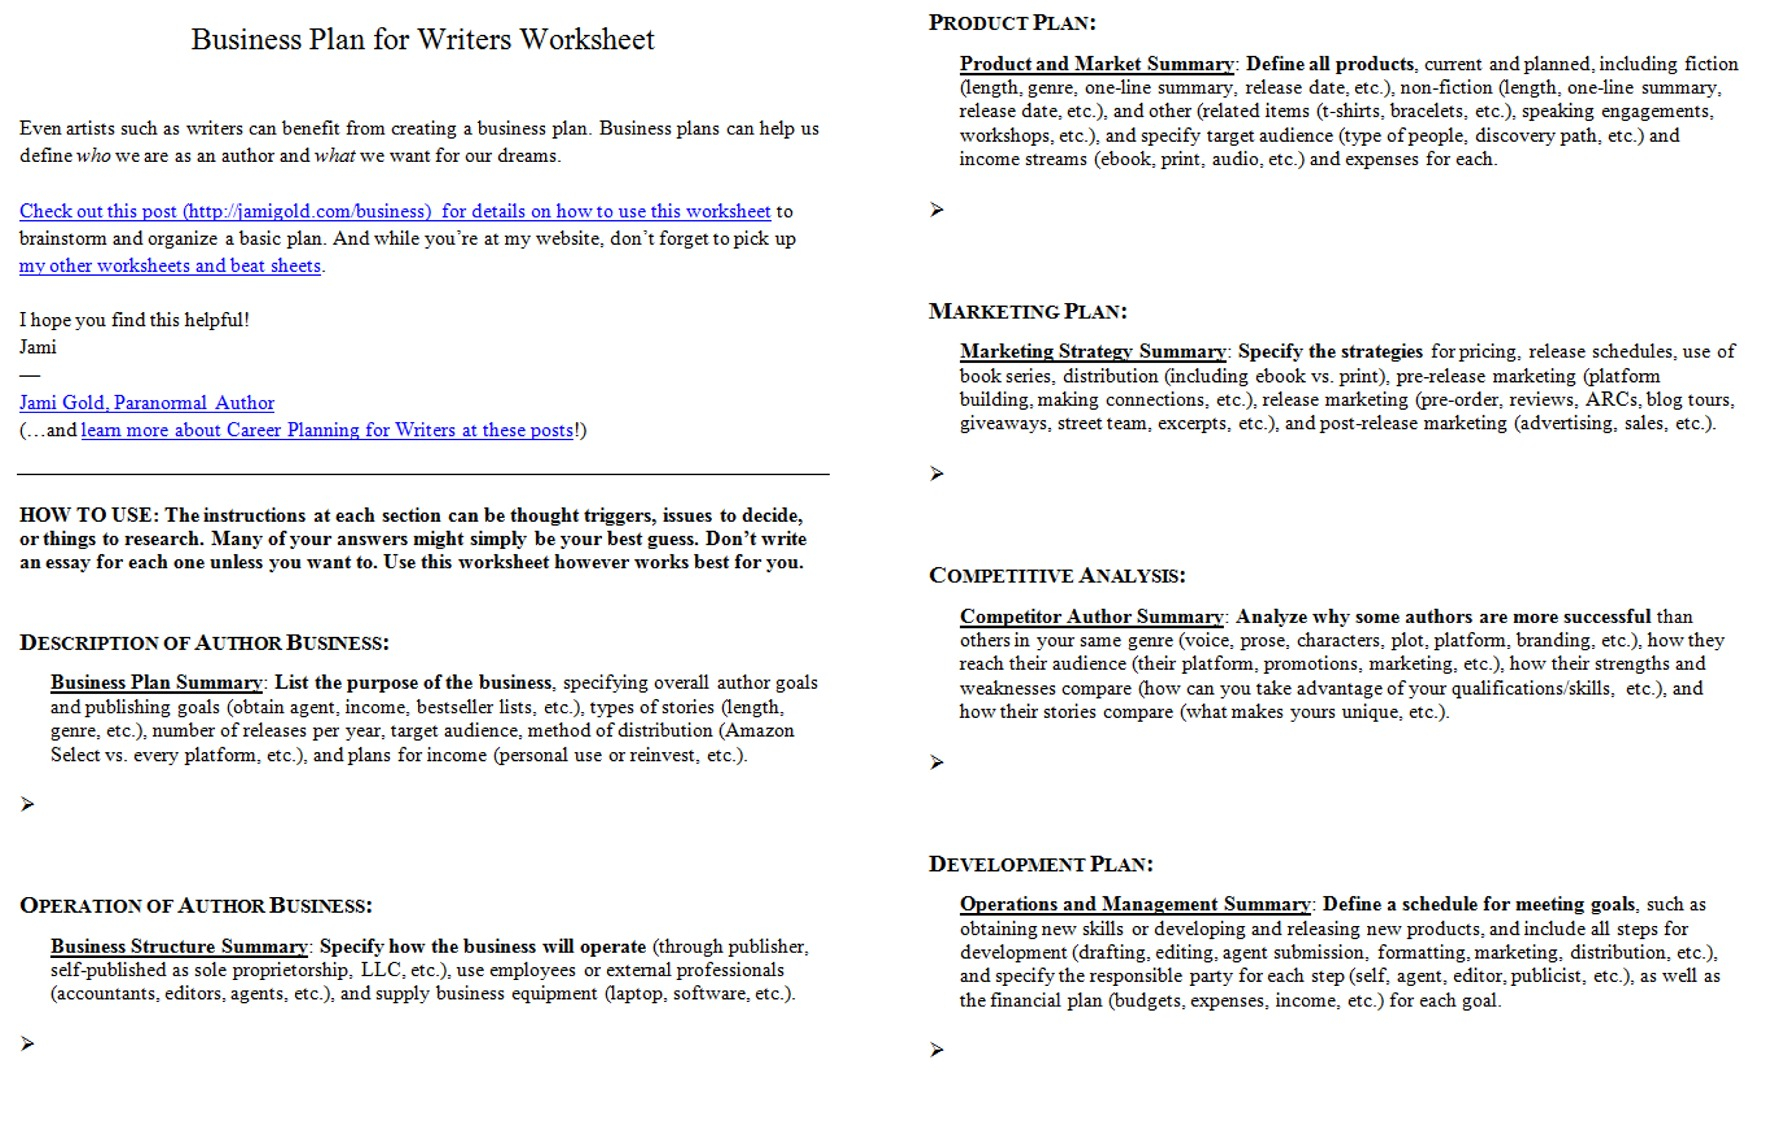 Proatmealus  Sweet Worksheets For Writers  Jami Gold Paranormal Author With Heavenly Screen Shot Of Both Pages Of The Business Plan For Writers Worksheet With Cute Nol Carryover Worksheet Also Multiplication And Division Worksheets Year  In Addition Roman Numerals Worksheet For Grade  And Human Body Systems Worksheets High School As Well As Surface Area And Volume Of Solids Worksheet Additionally Was Were Worksheets From Jamigoldcom With Proatmealus  Heavenly Worksheets For Writers  Jami Gold Paranormal Author With Cute Screen Shot Of Both Pages Of The Business Plan For Writers Worksheet And Sweet Nol Carryover Worksheet Also Multiplication And Division Worksheets Year  In Addition Roman Numerals Worksheet For Grade  From Jamigoldcom